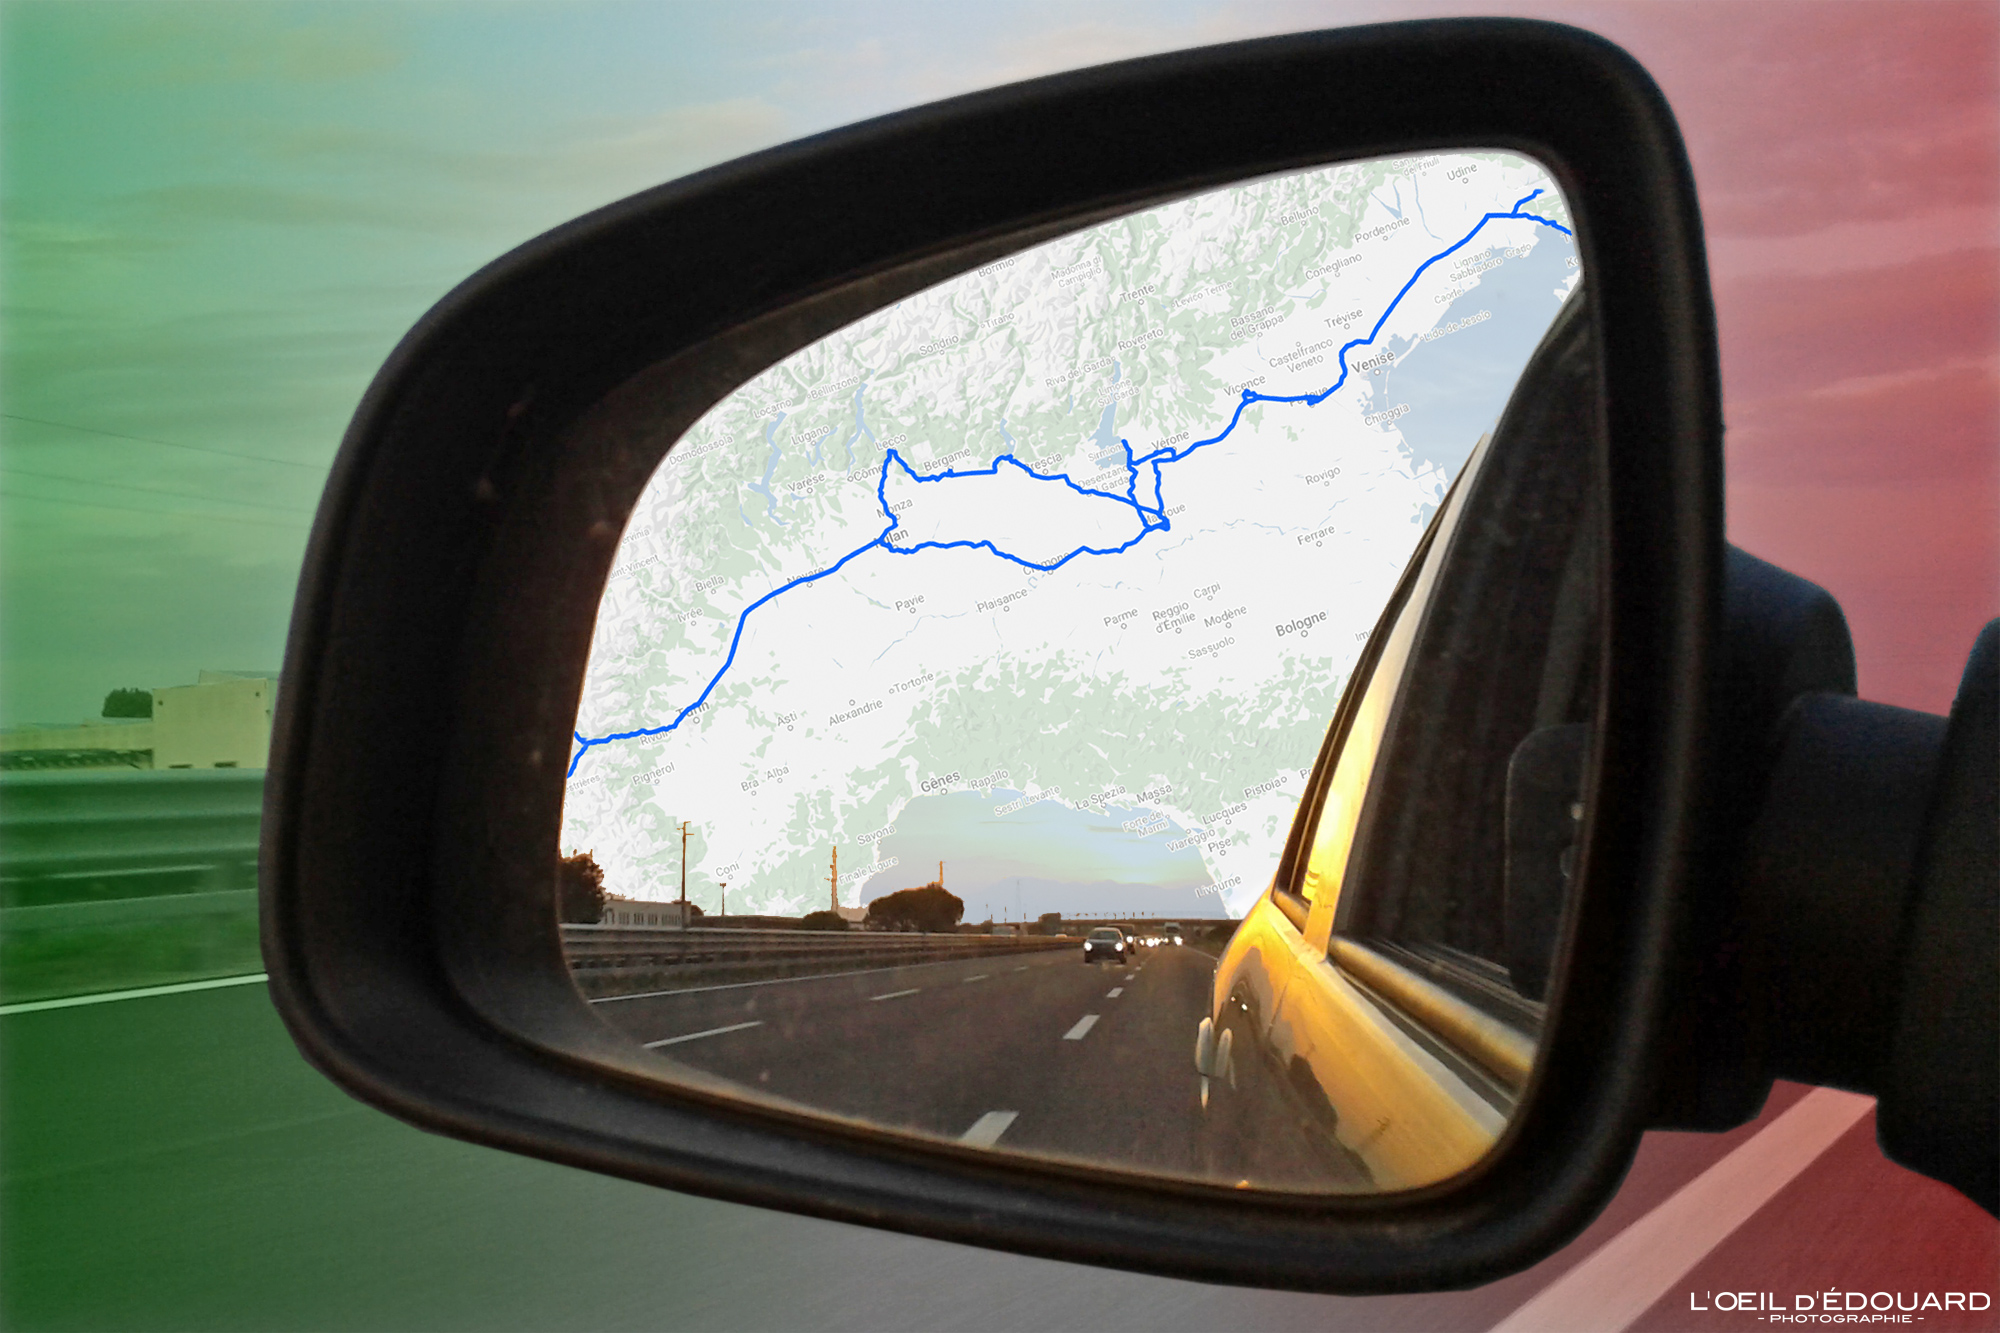 Road Trip Italie Nord 0 Trace Ta Route blog voyage 1